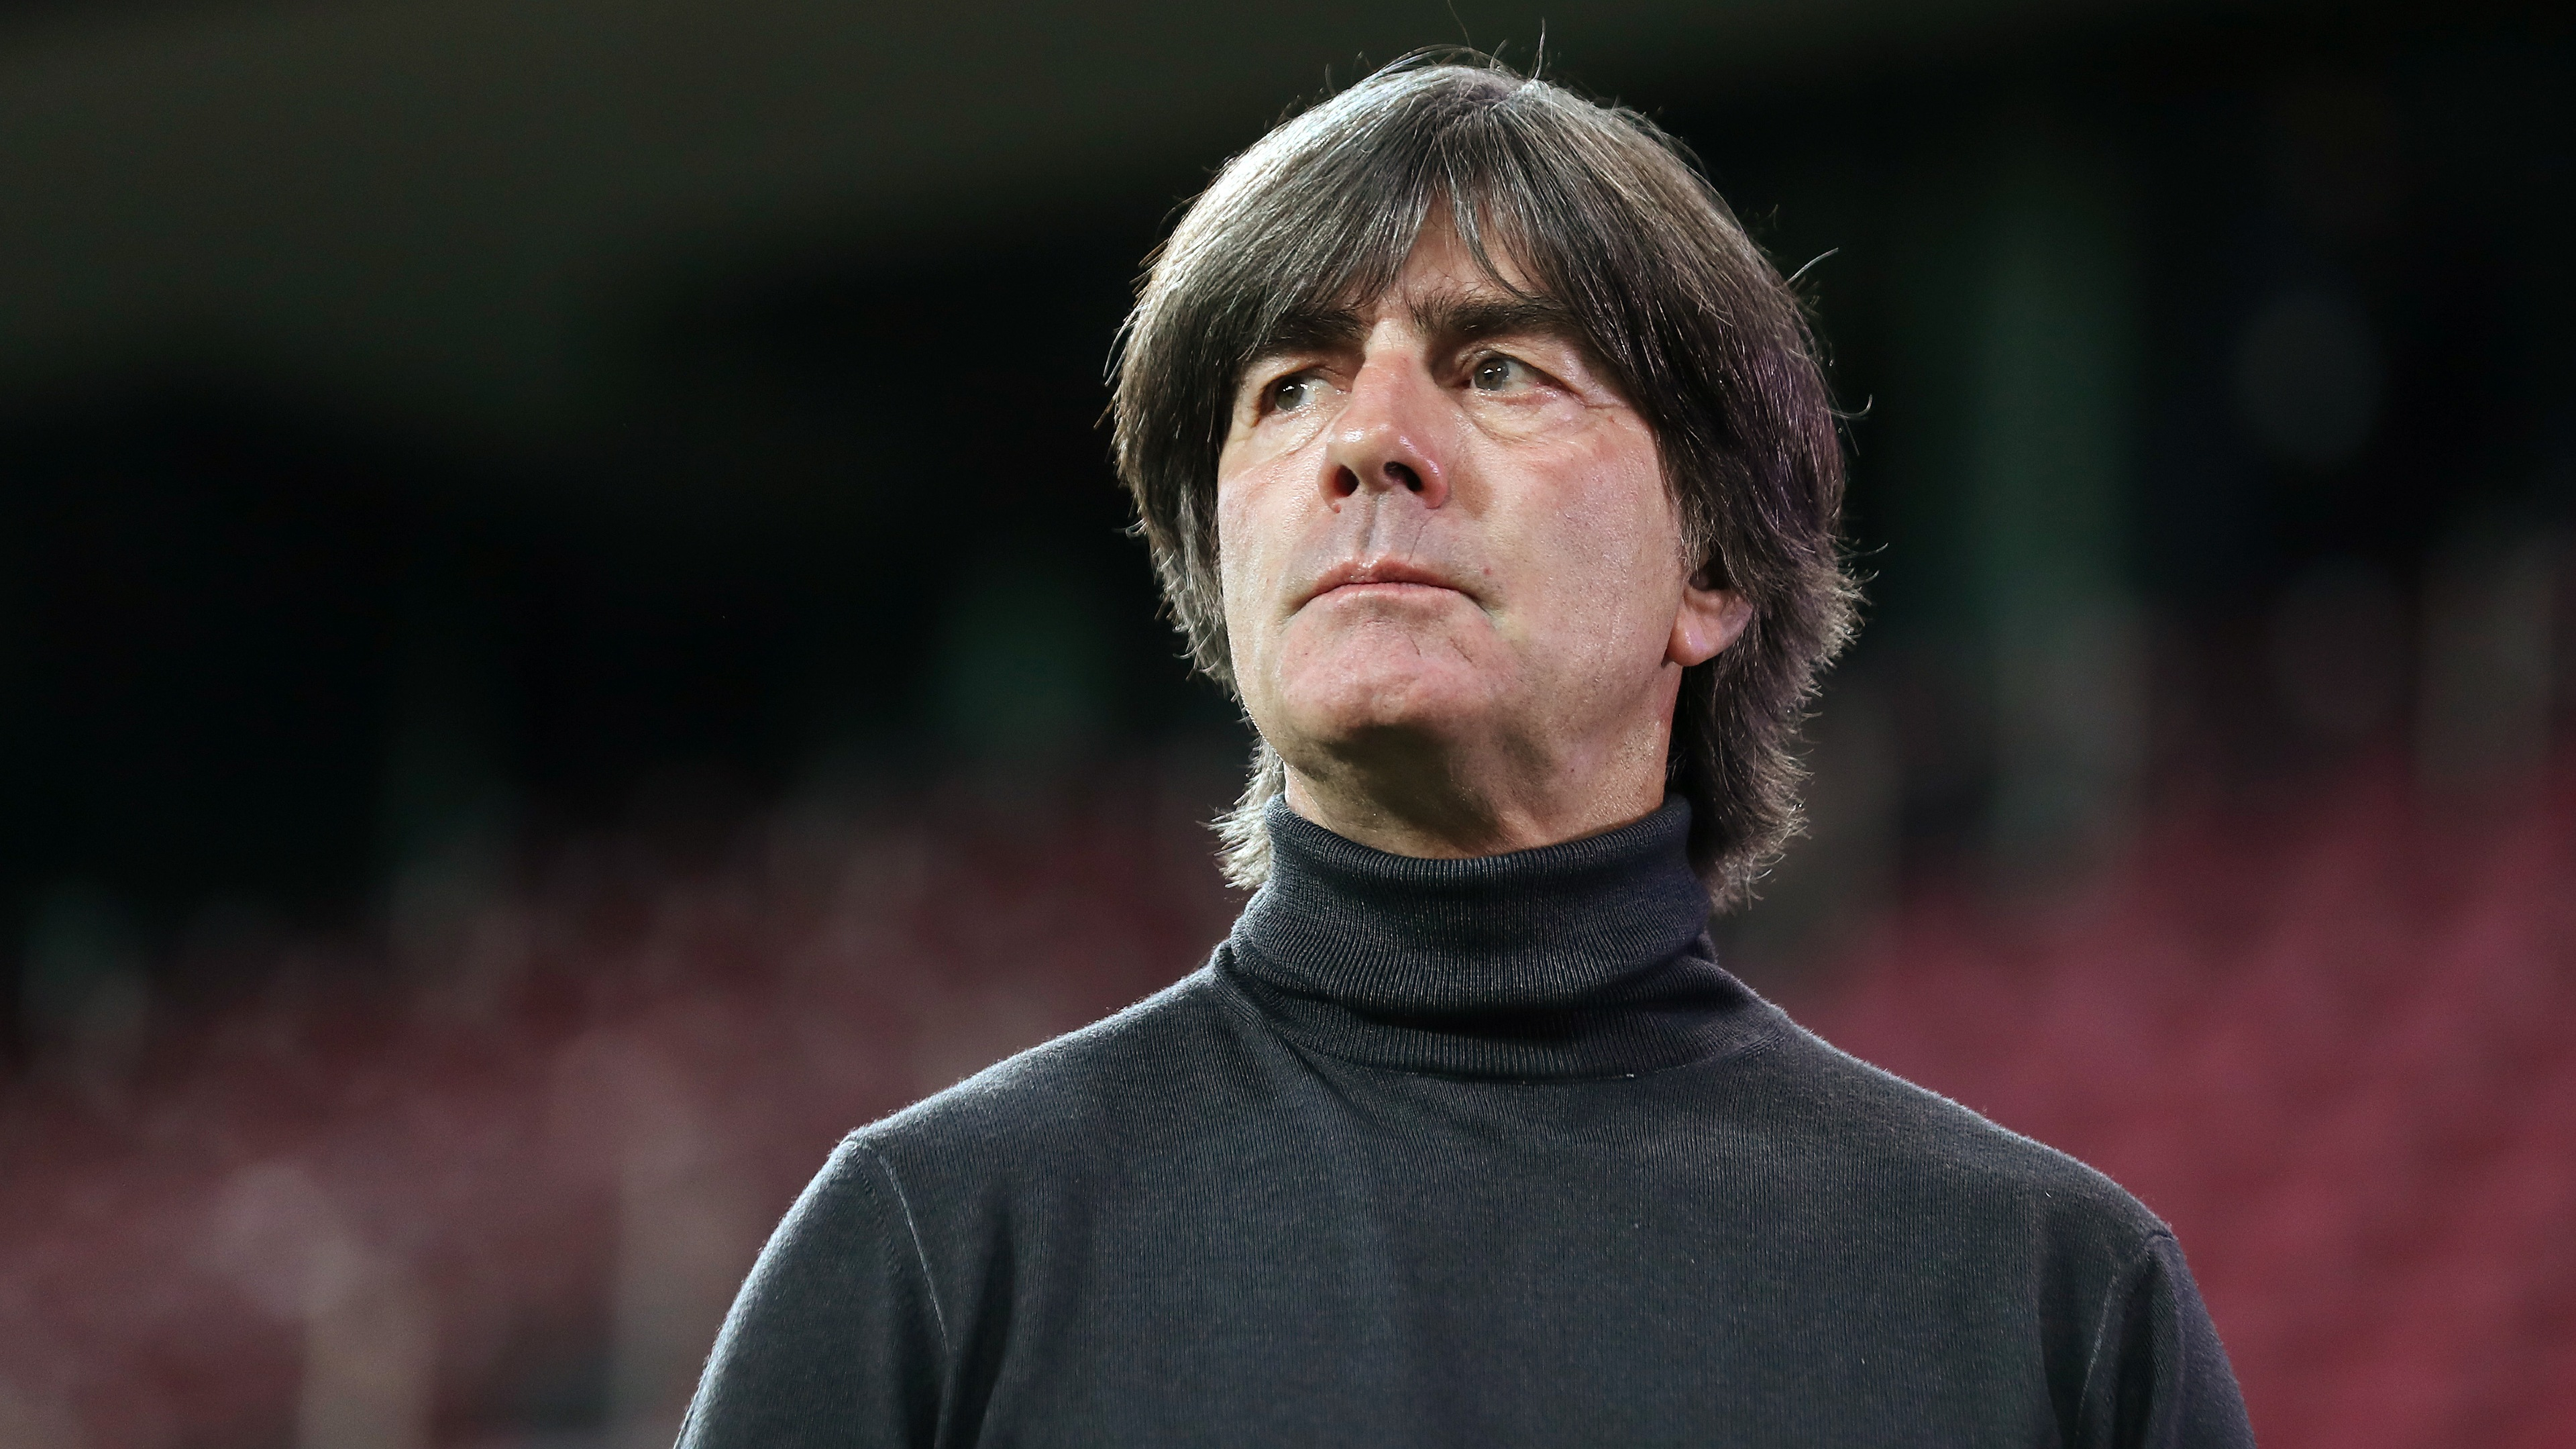 'Semi-finals is the minimum' - Optimistic Low sets Germany's Euro 2020 target despite failing to defeat Switzerland